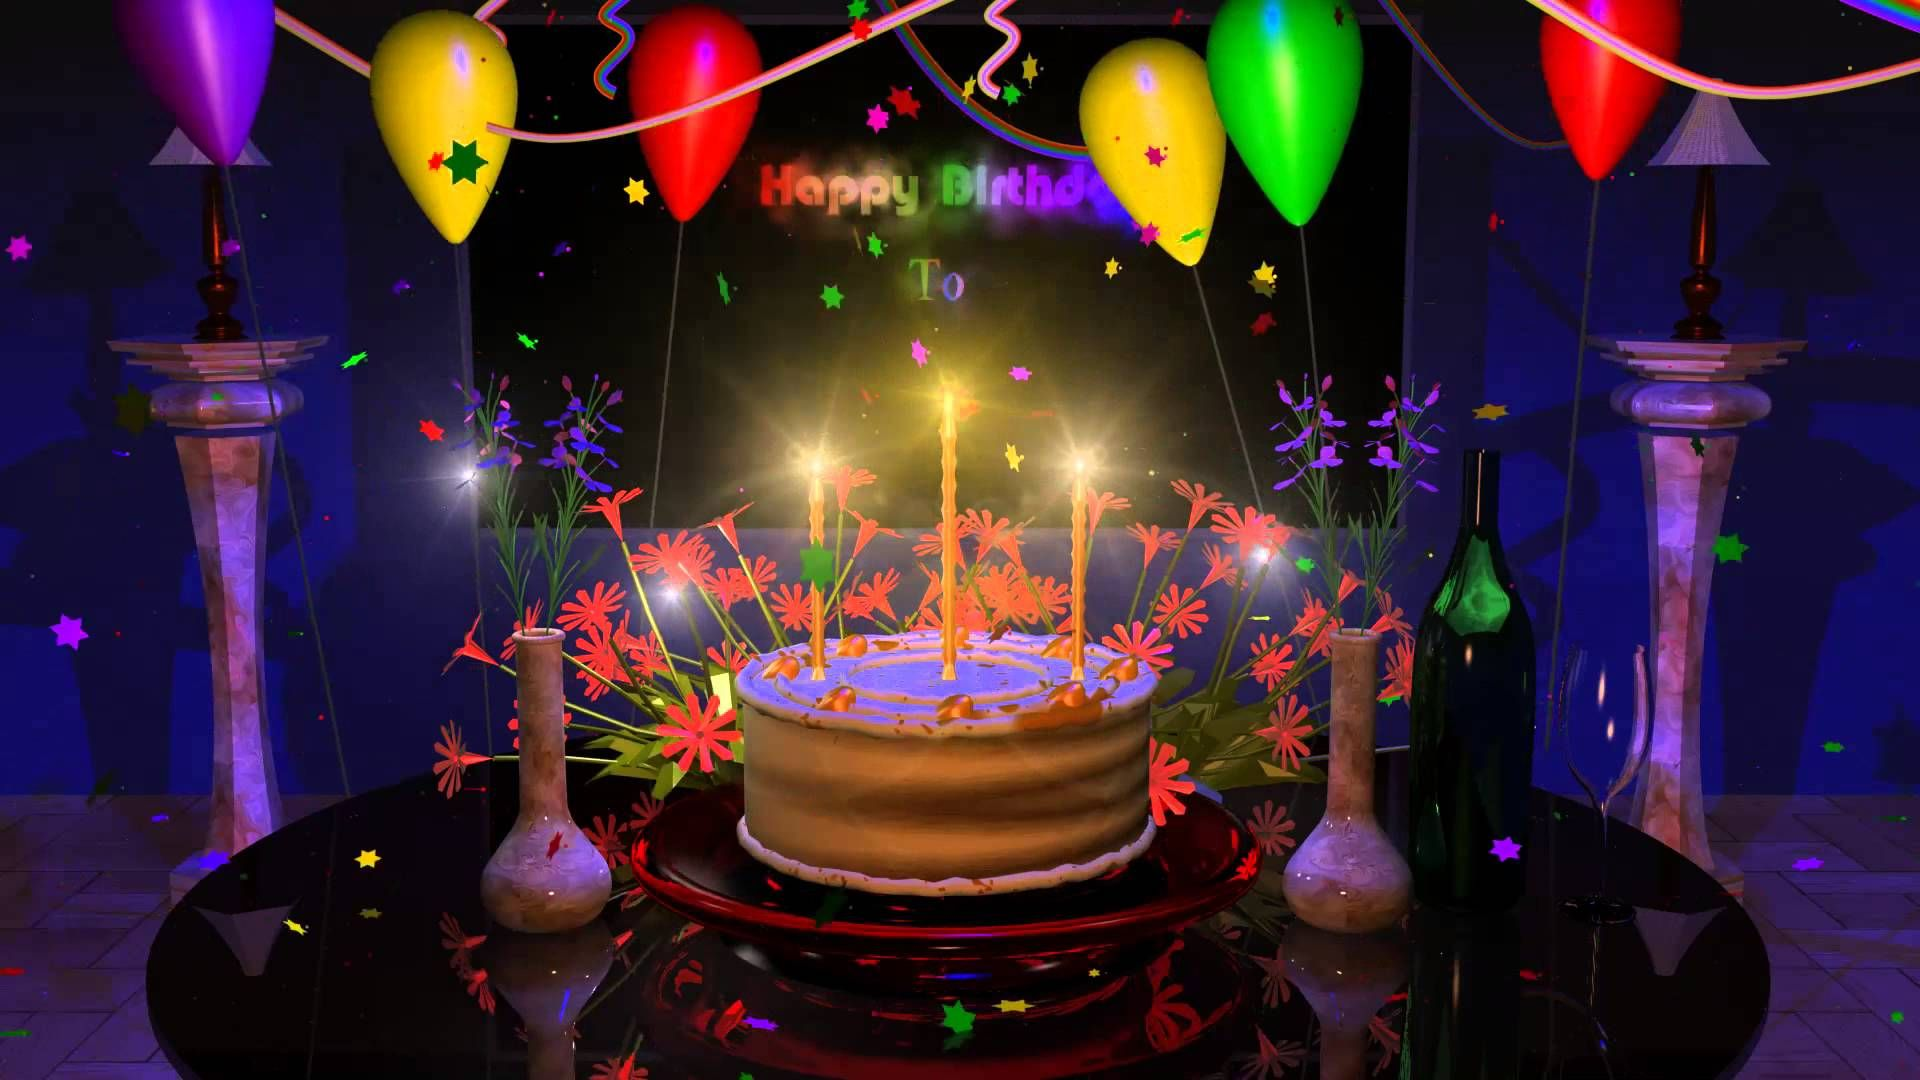 Happy Birthday Cake Presentation Animation Video Youtube With